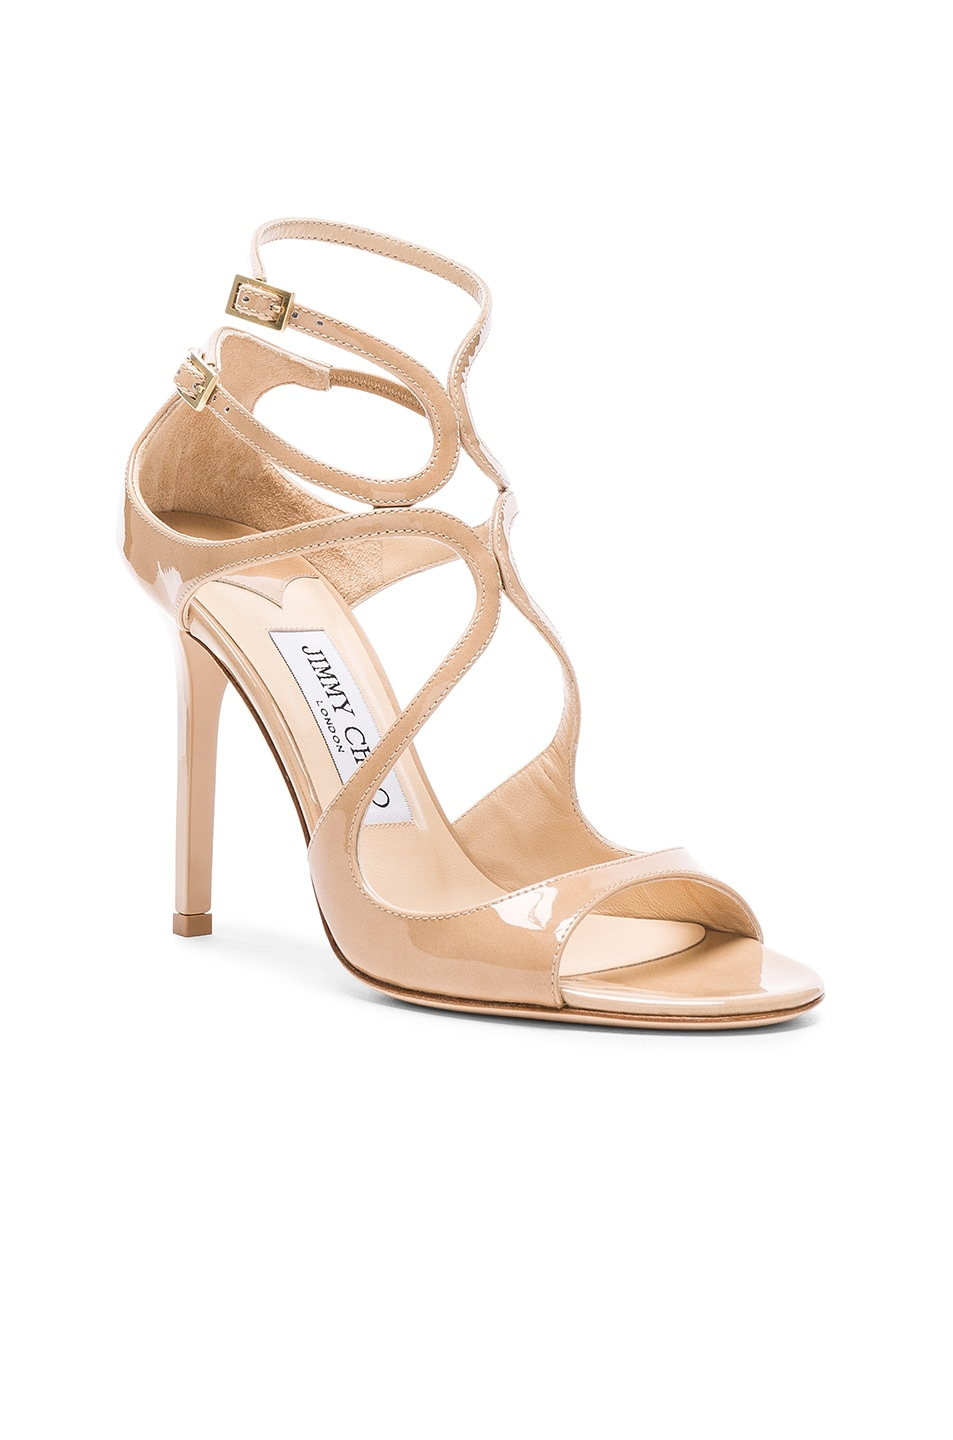 Image 2 of Jimmy Choo Patent Leather Lang Heels in Nude